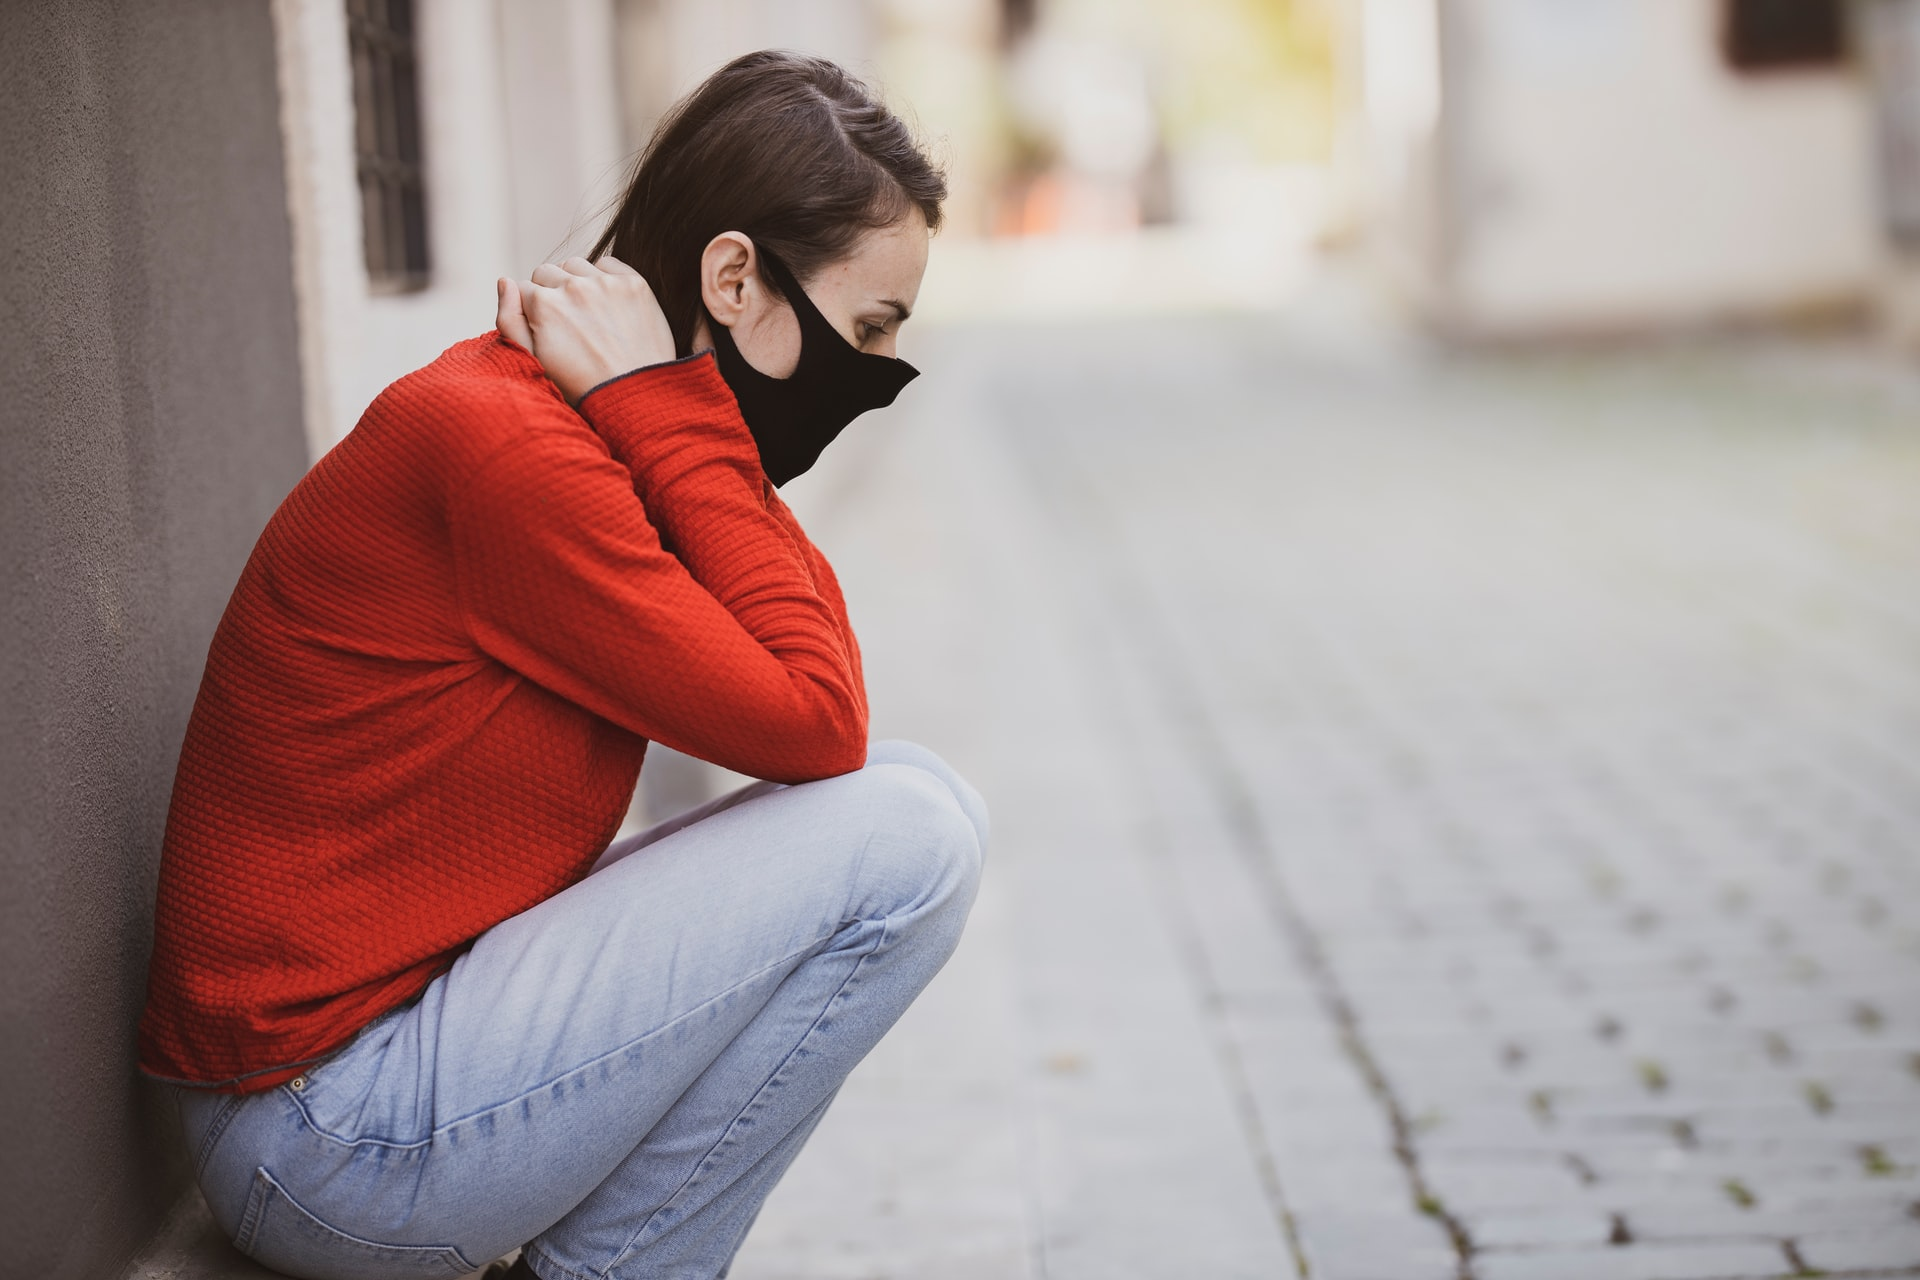 Woman sitting on a footpath feeling distressed